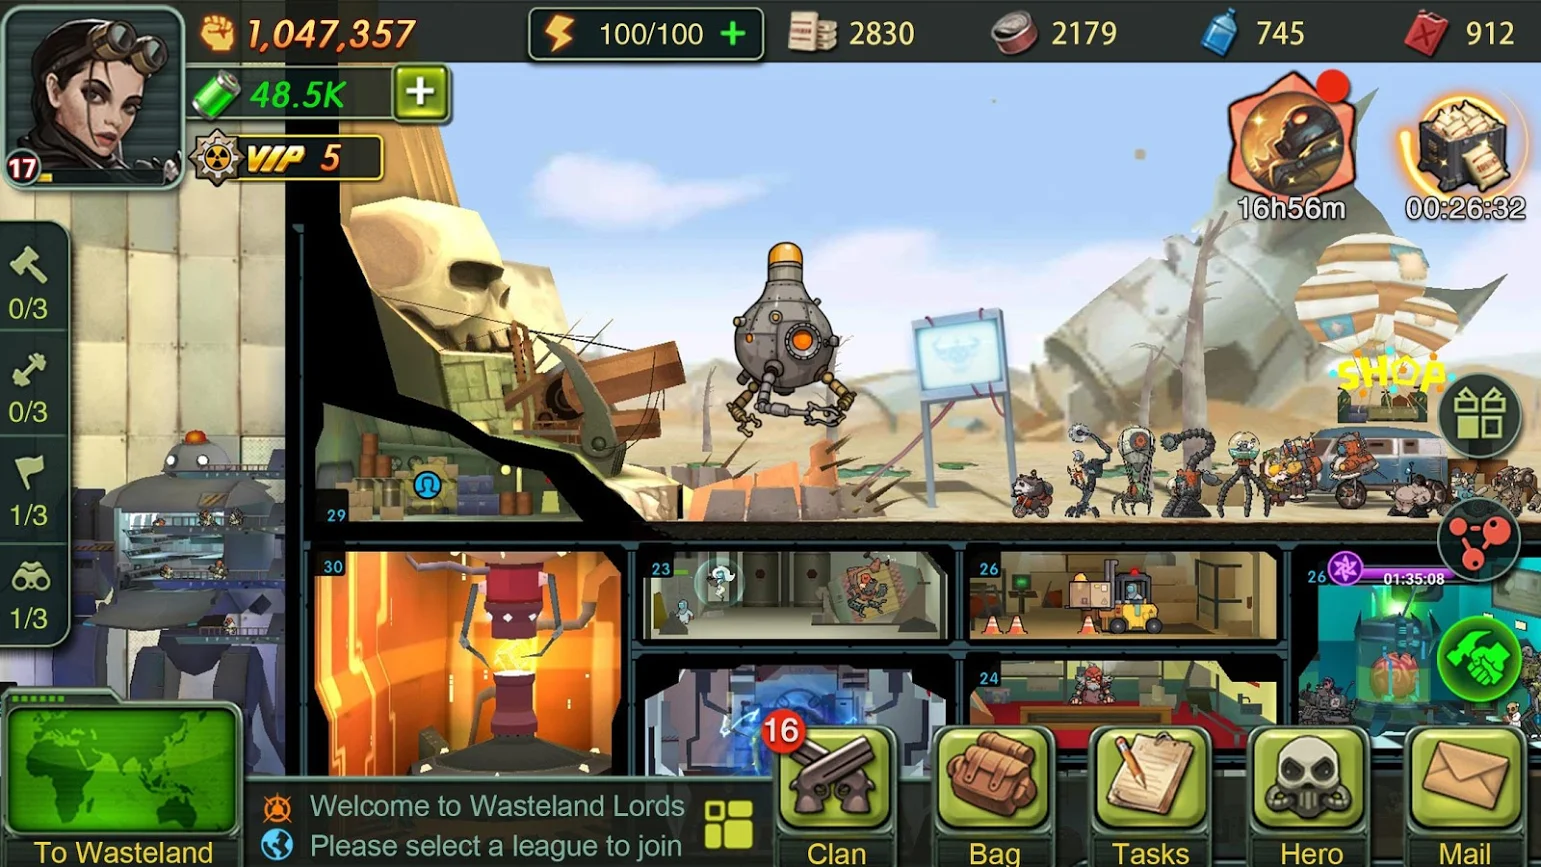 Wasteland Lords – Post-Apocalyptic Shelter Survival Game Releasing Later in December